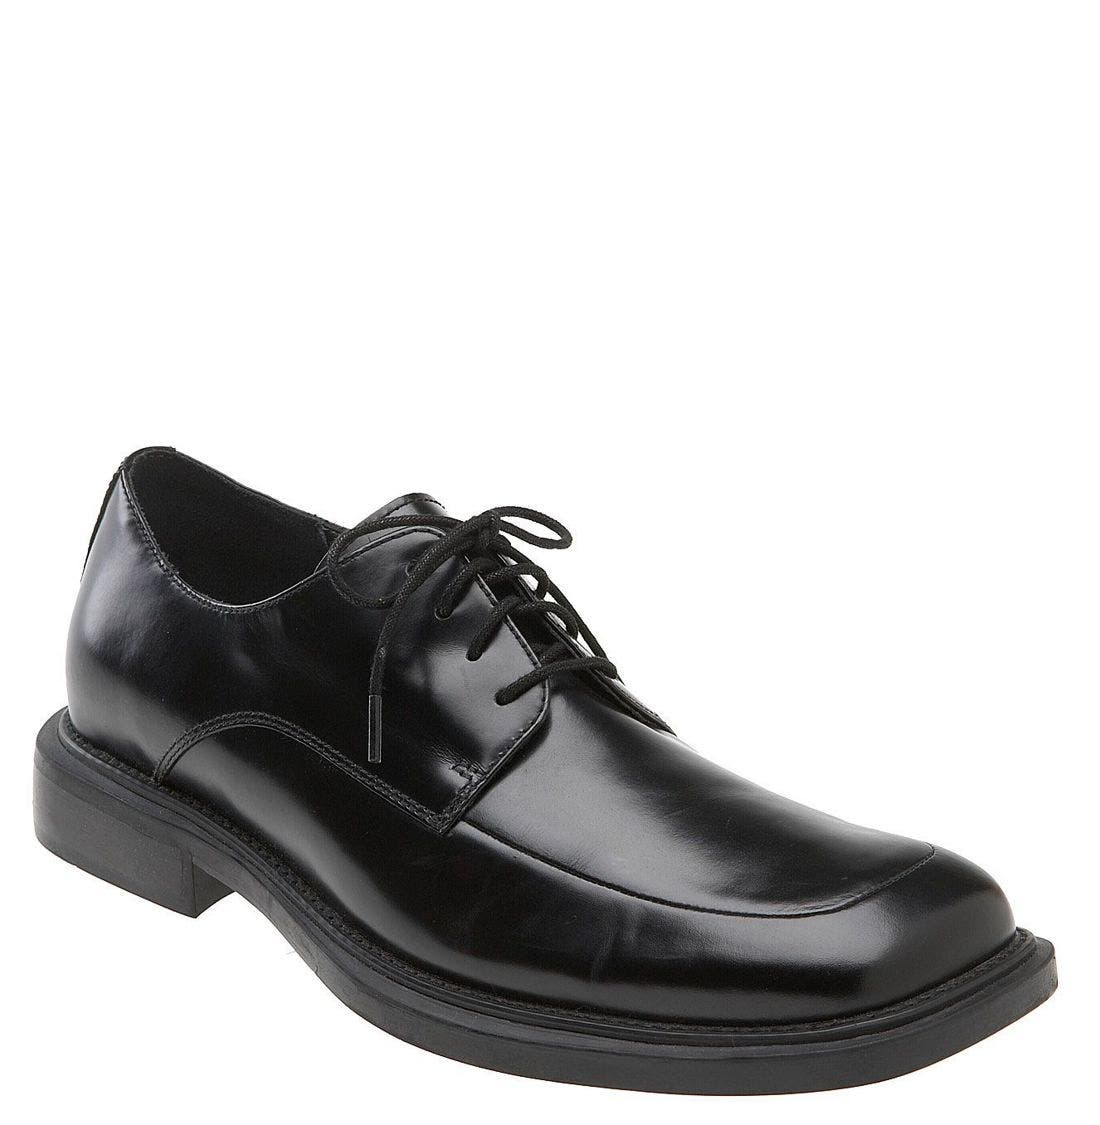 Alternate Image 1 Selected - Kenneth Cole New York 'Merge' Oxford